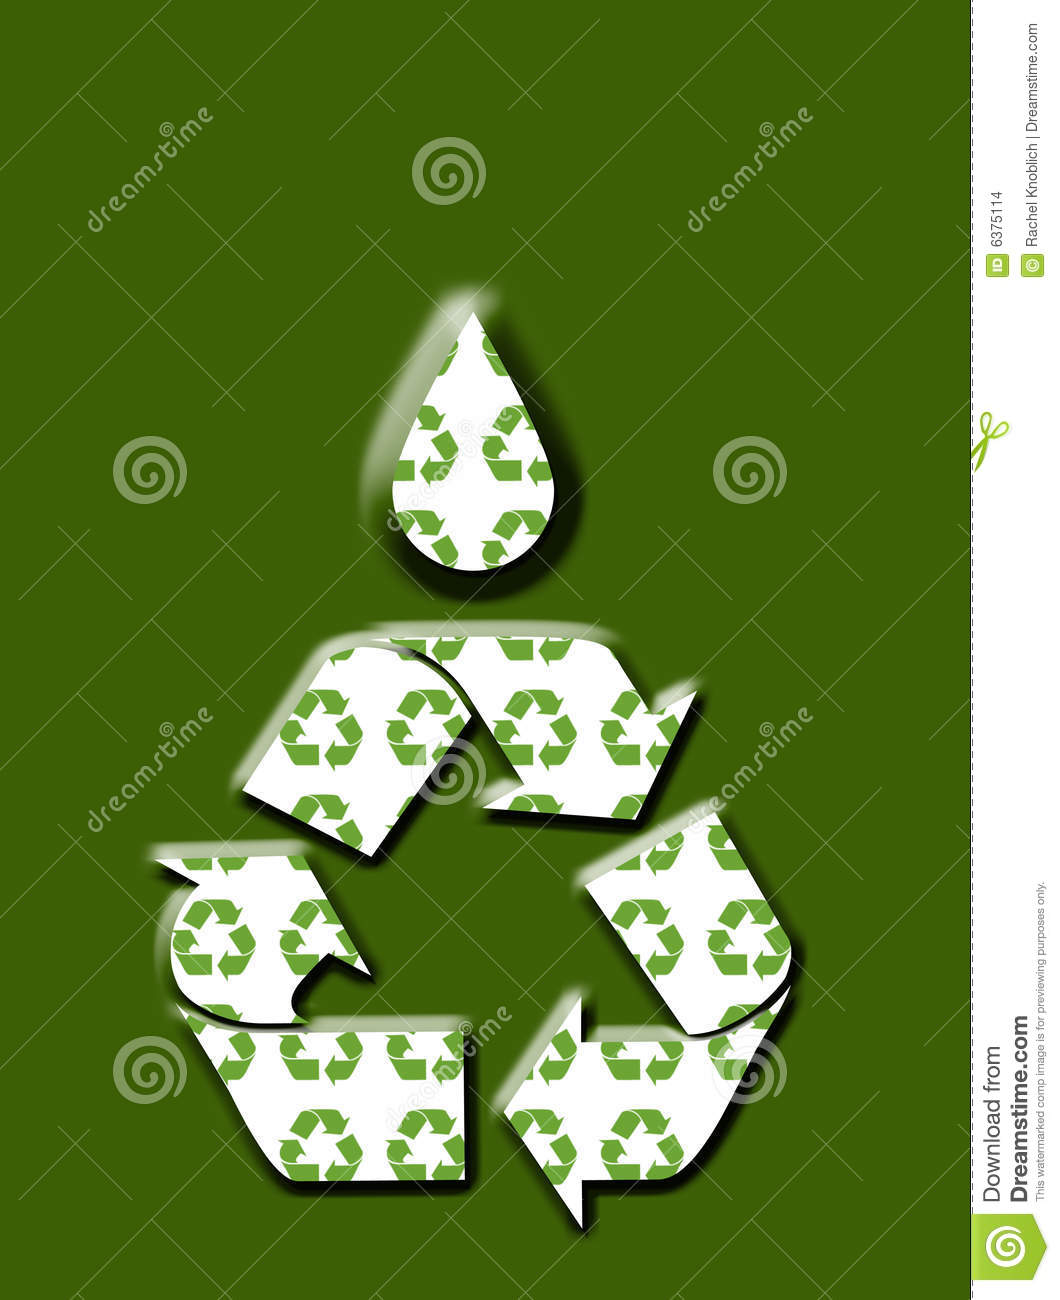 Go Green Recycle Background Stock Images - Image: 6375114